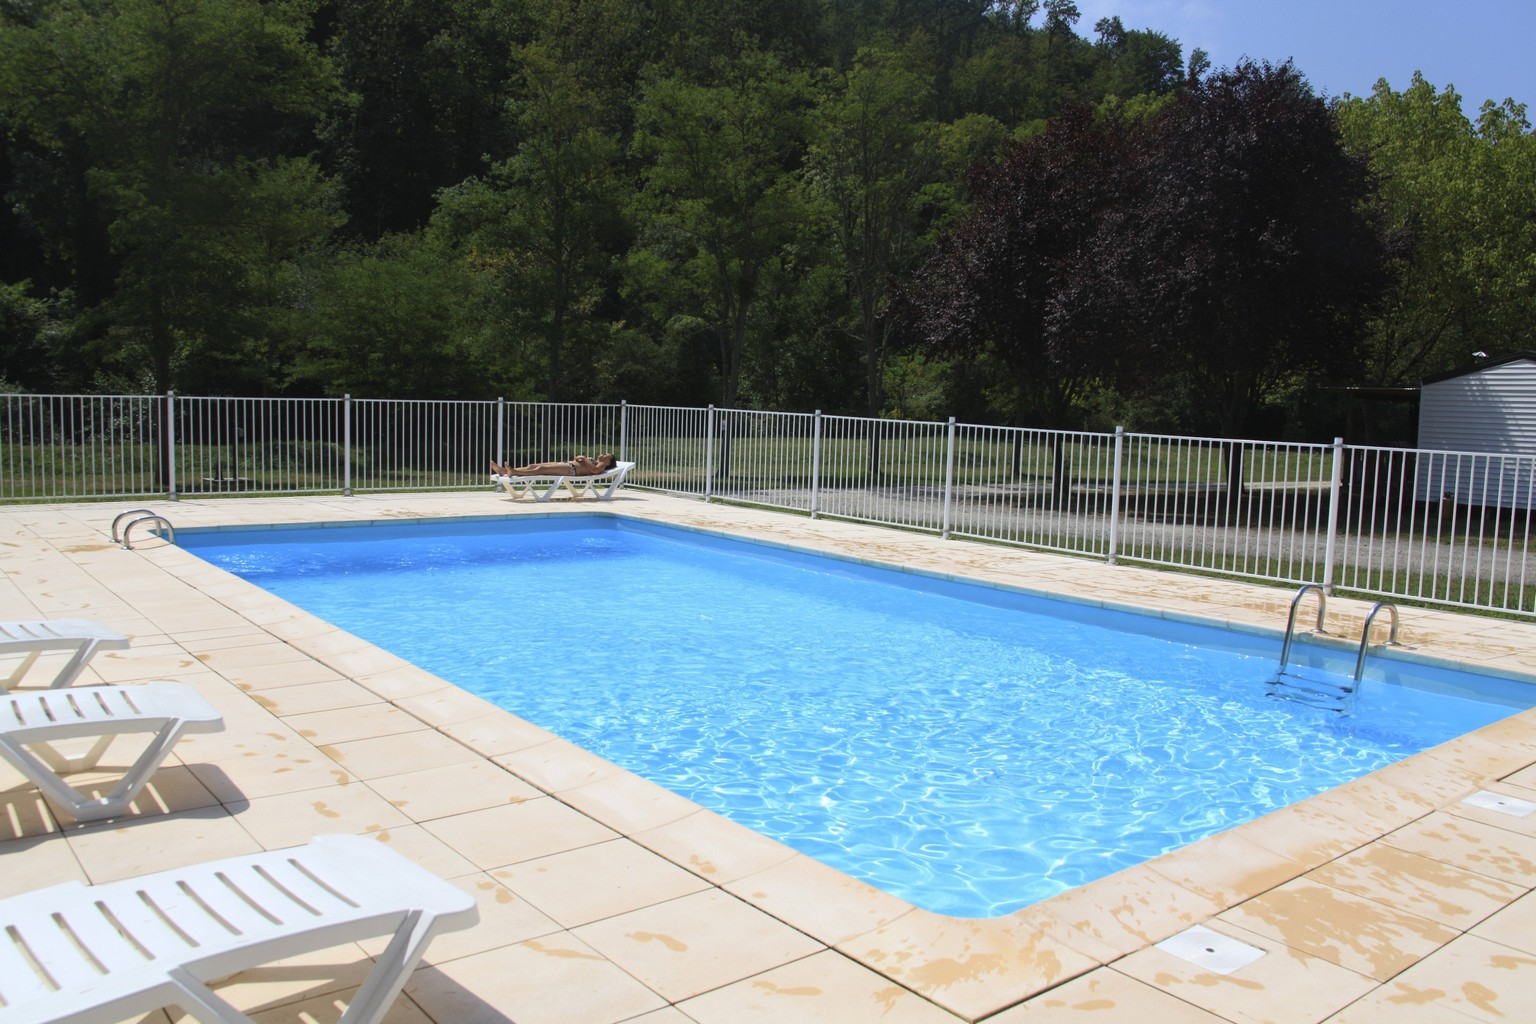 Barri res de protection de piscine faire le bon choix for Barriere de piscine demontable